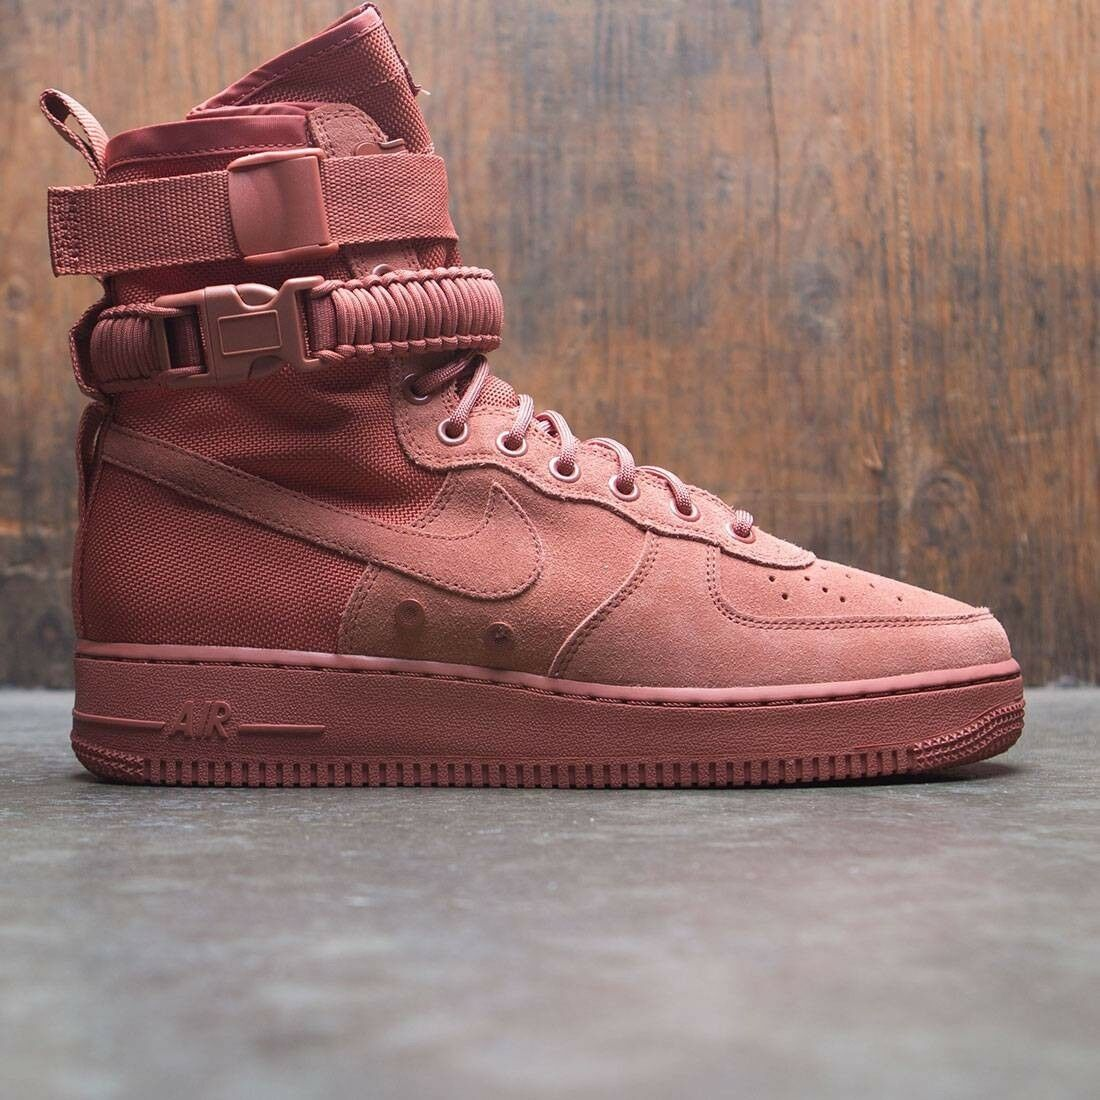 Nike sf speciale campo air force 1 af1 boot dusty pesca dimensioni 864024-204